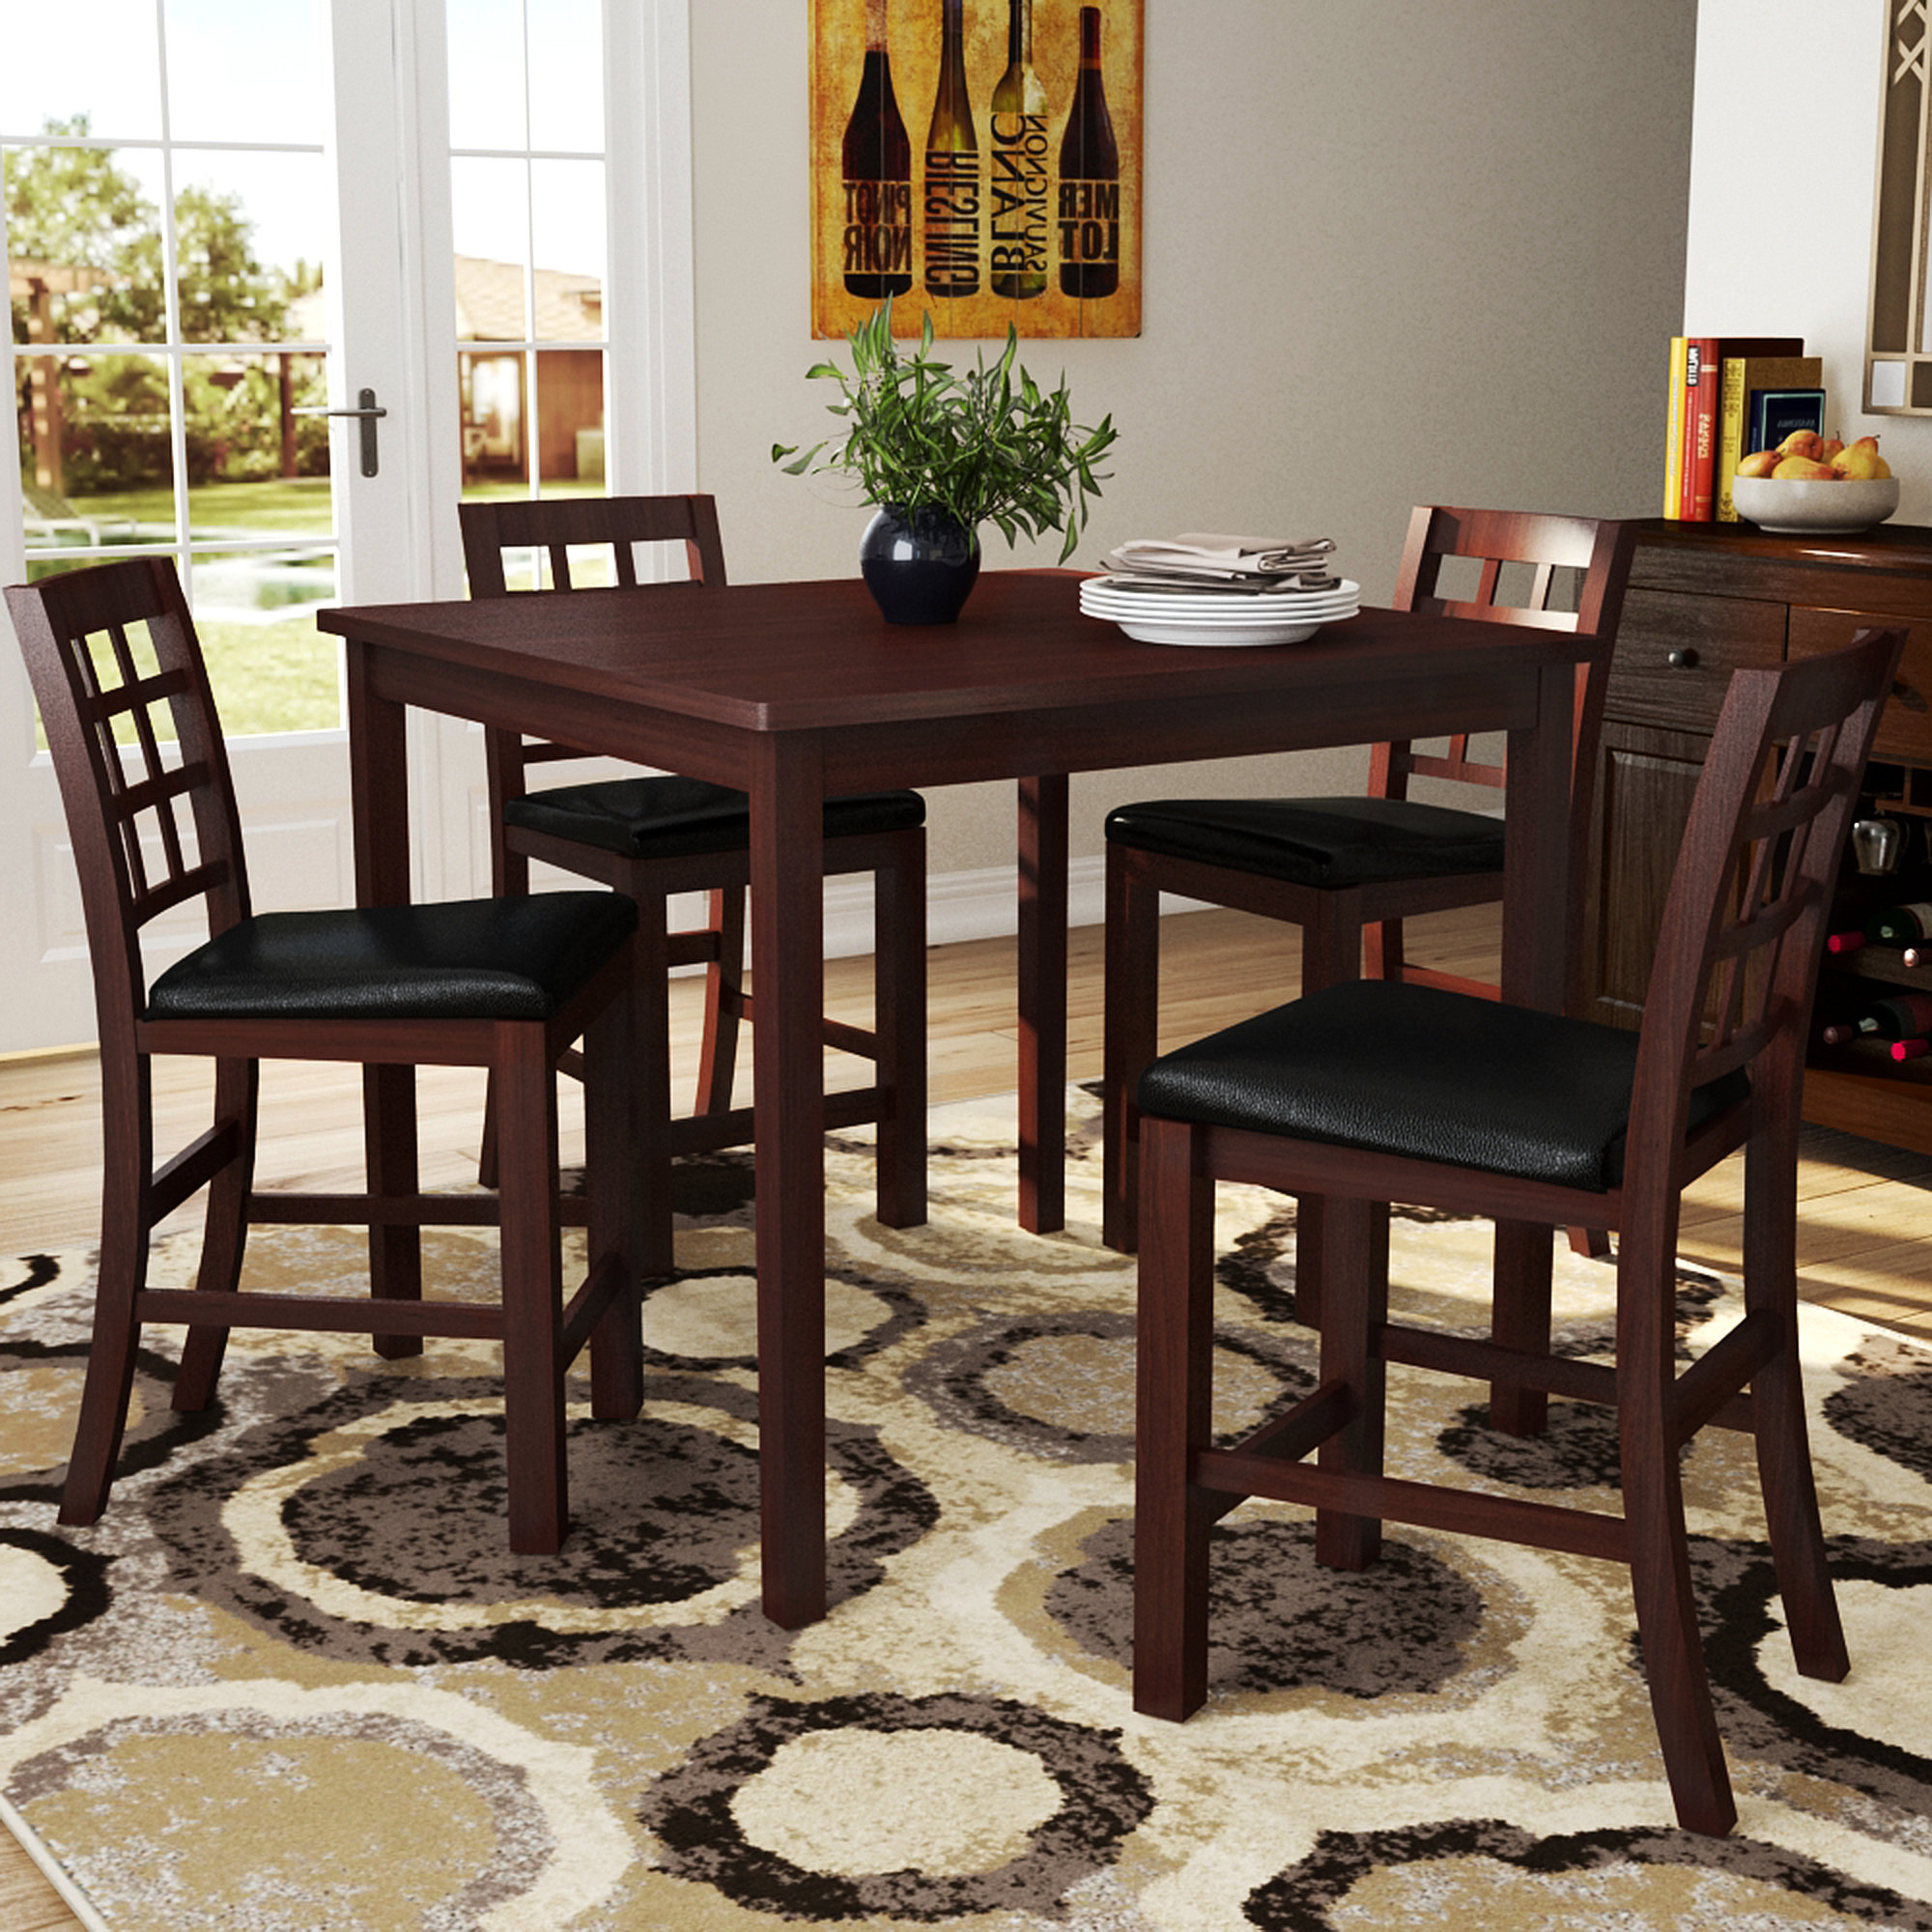 Penelope 3 Piece Counter Height Wood Dining Sets In Recent Red Barrel Studio Plymouth 5 Piece Counter Height Dining Set (View 12 of 25)